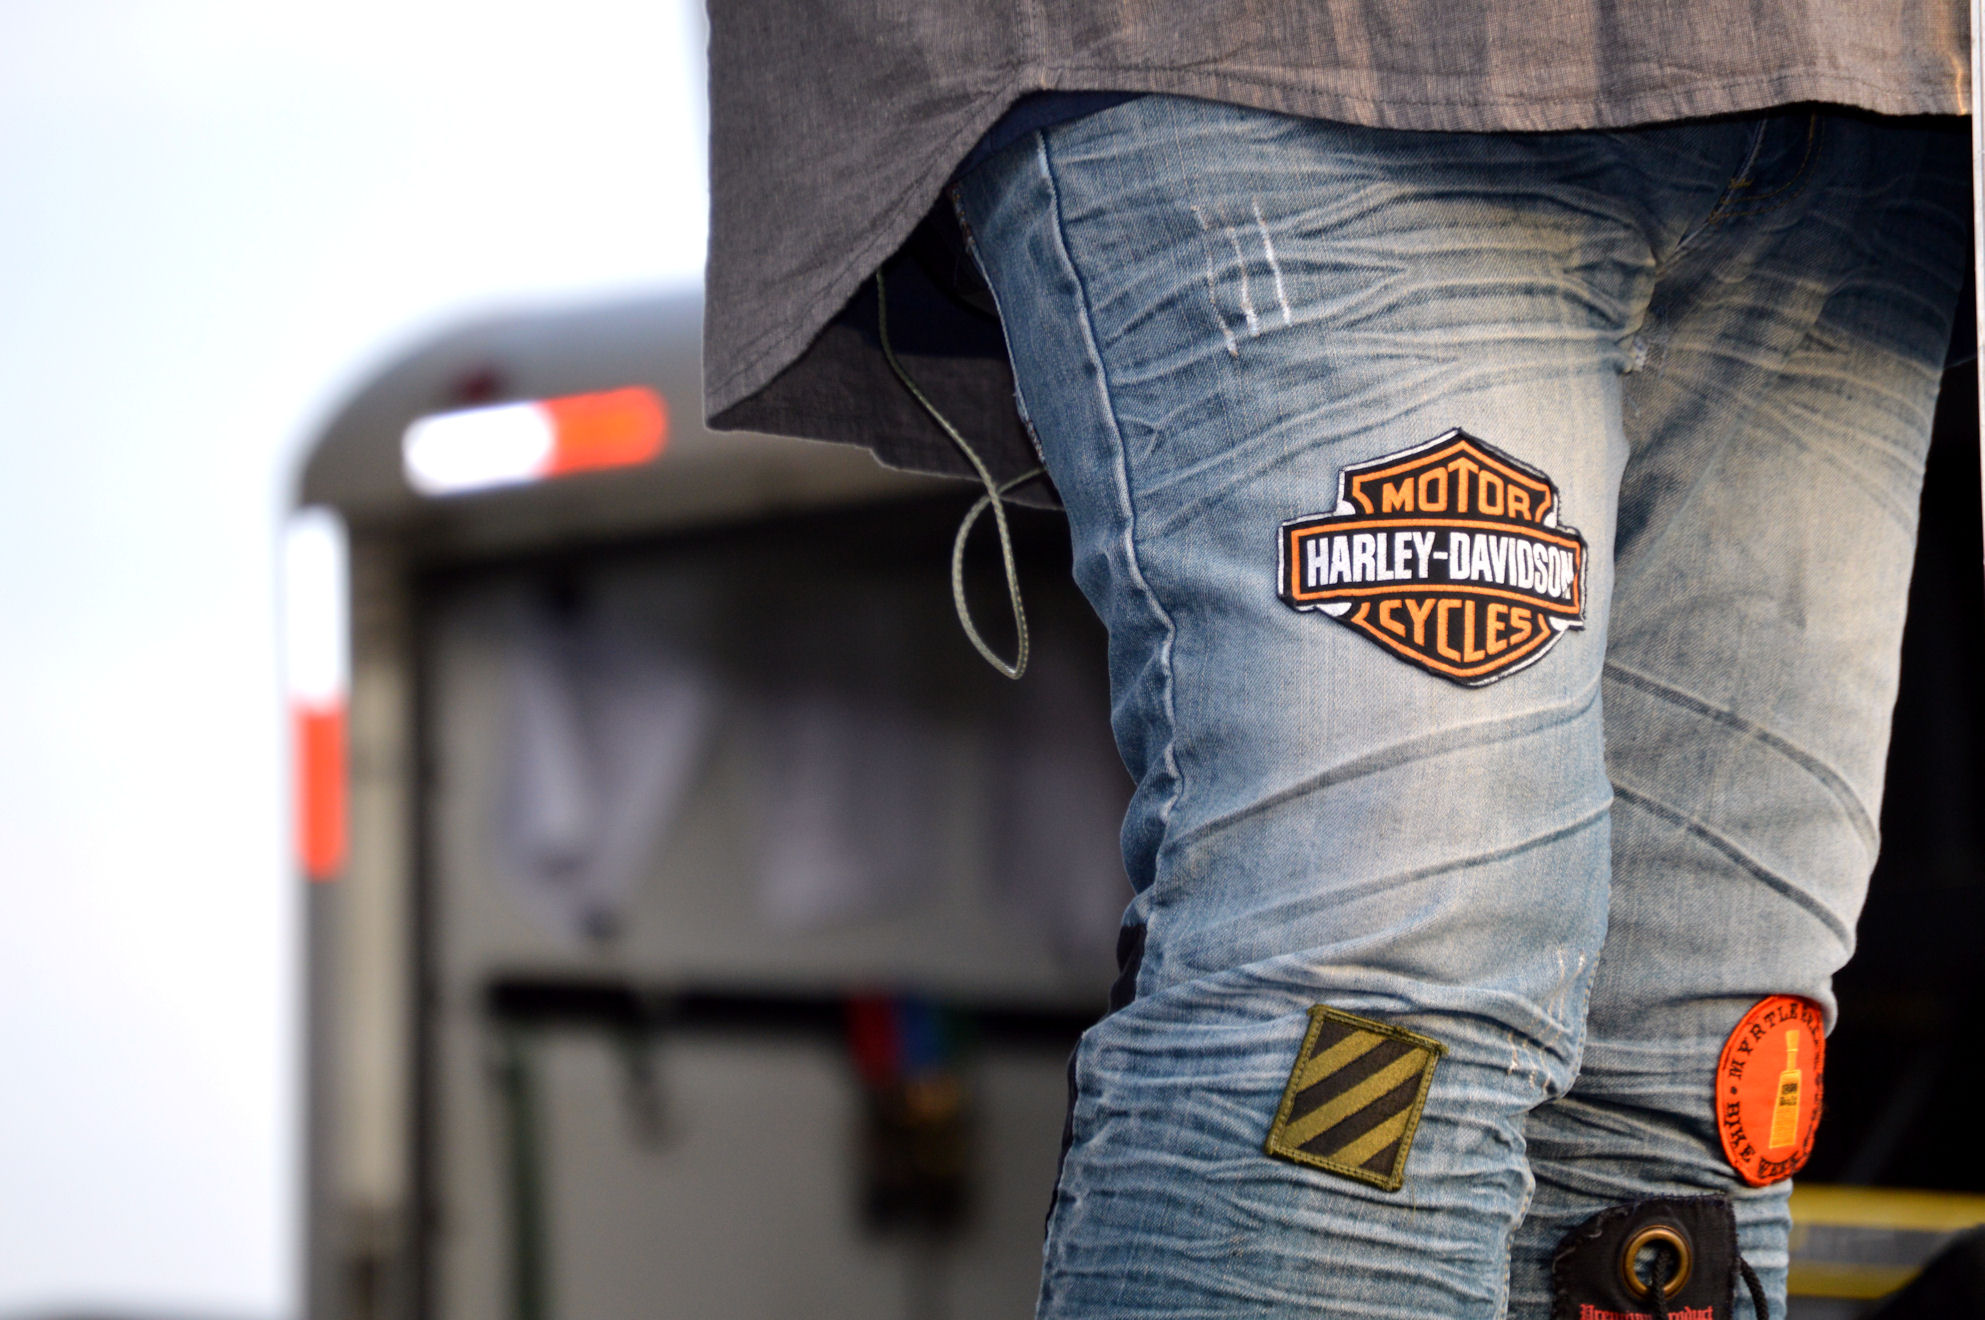 blue jeans, old, worn with harley davidson and other patches